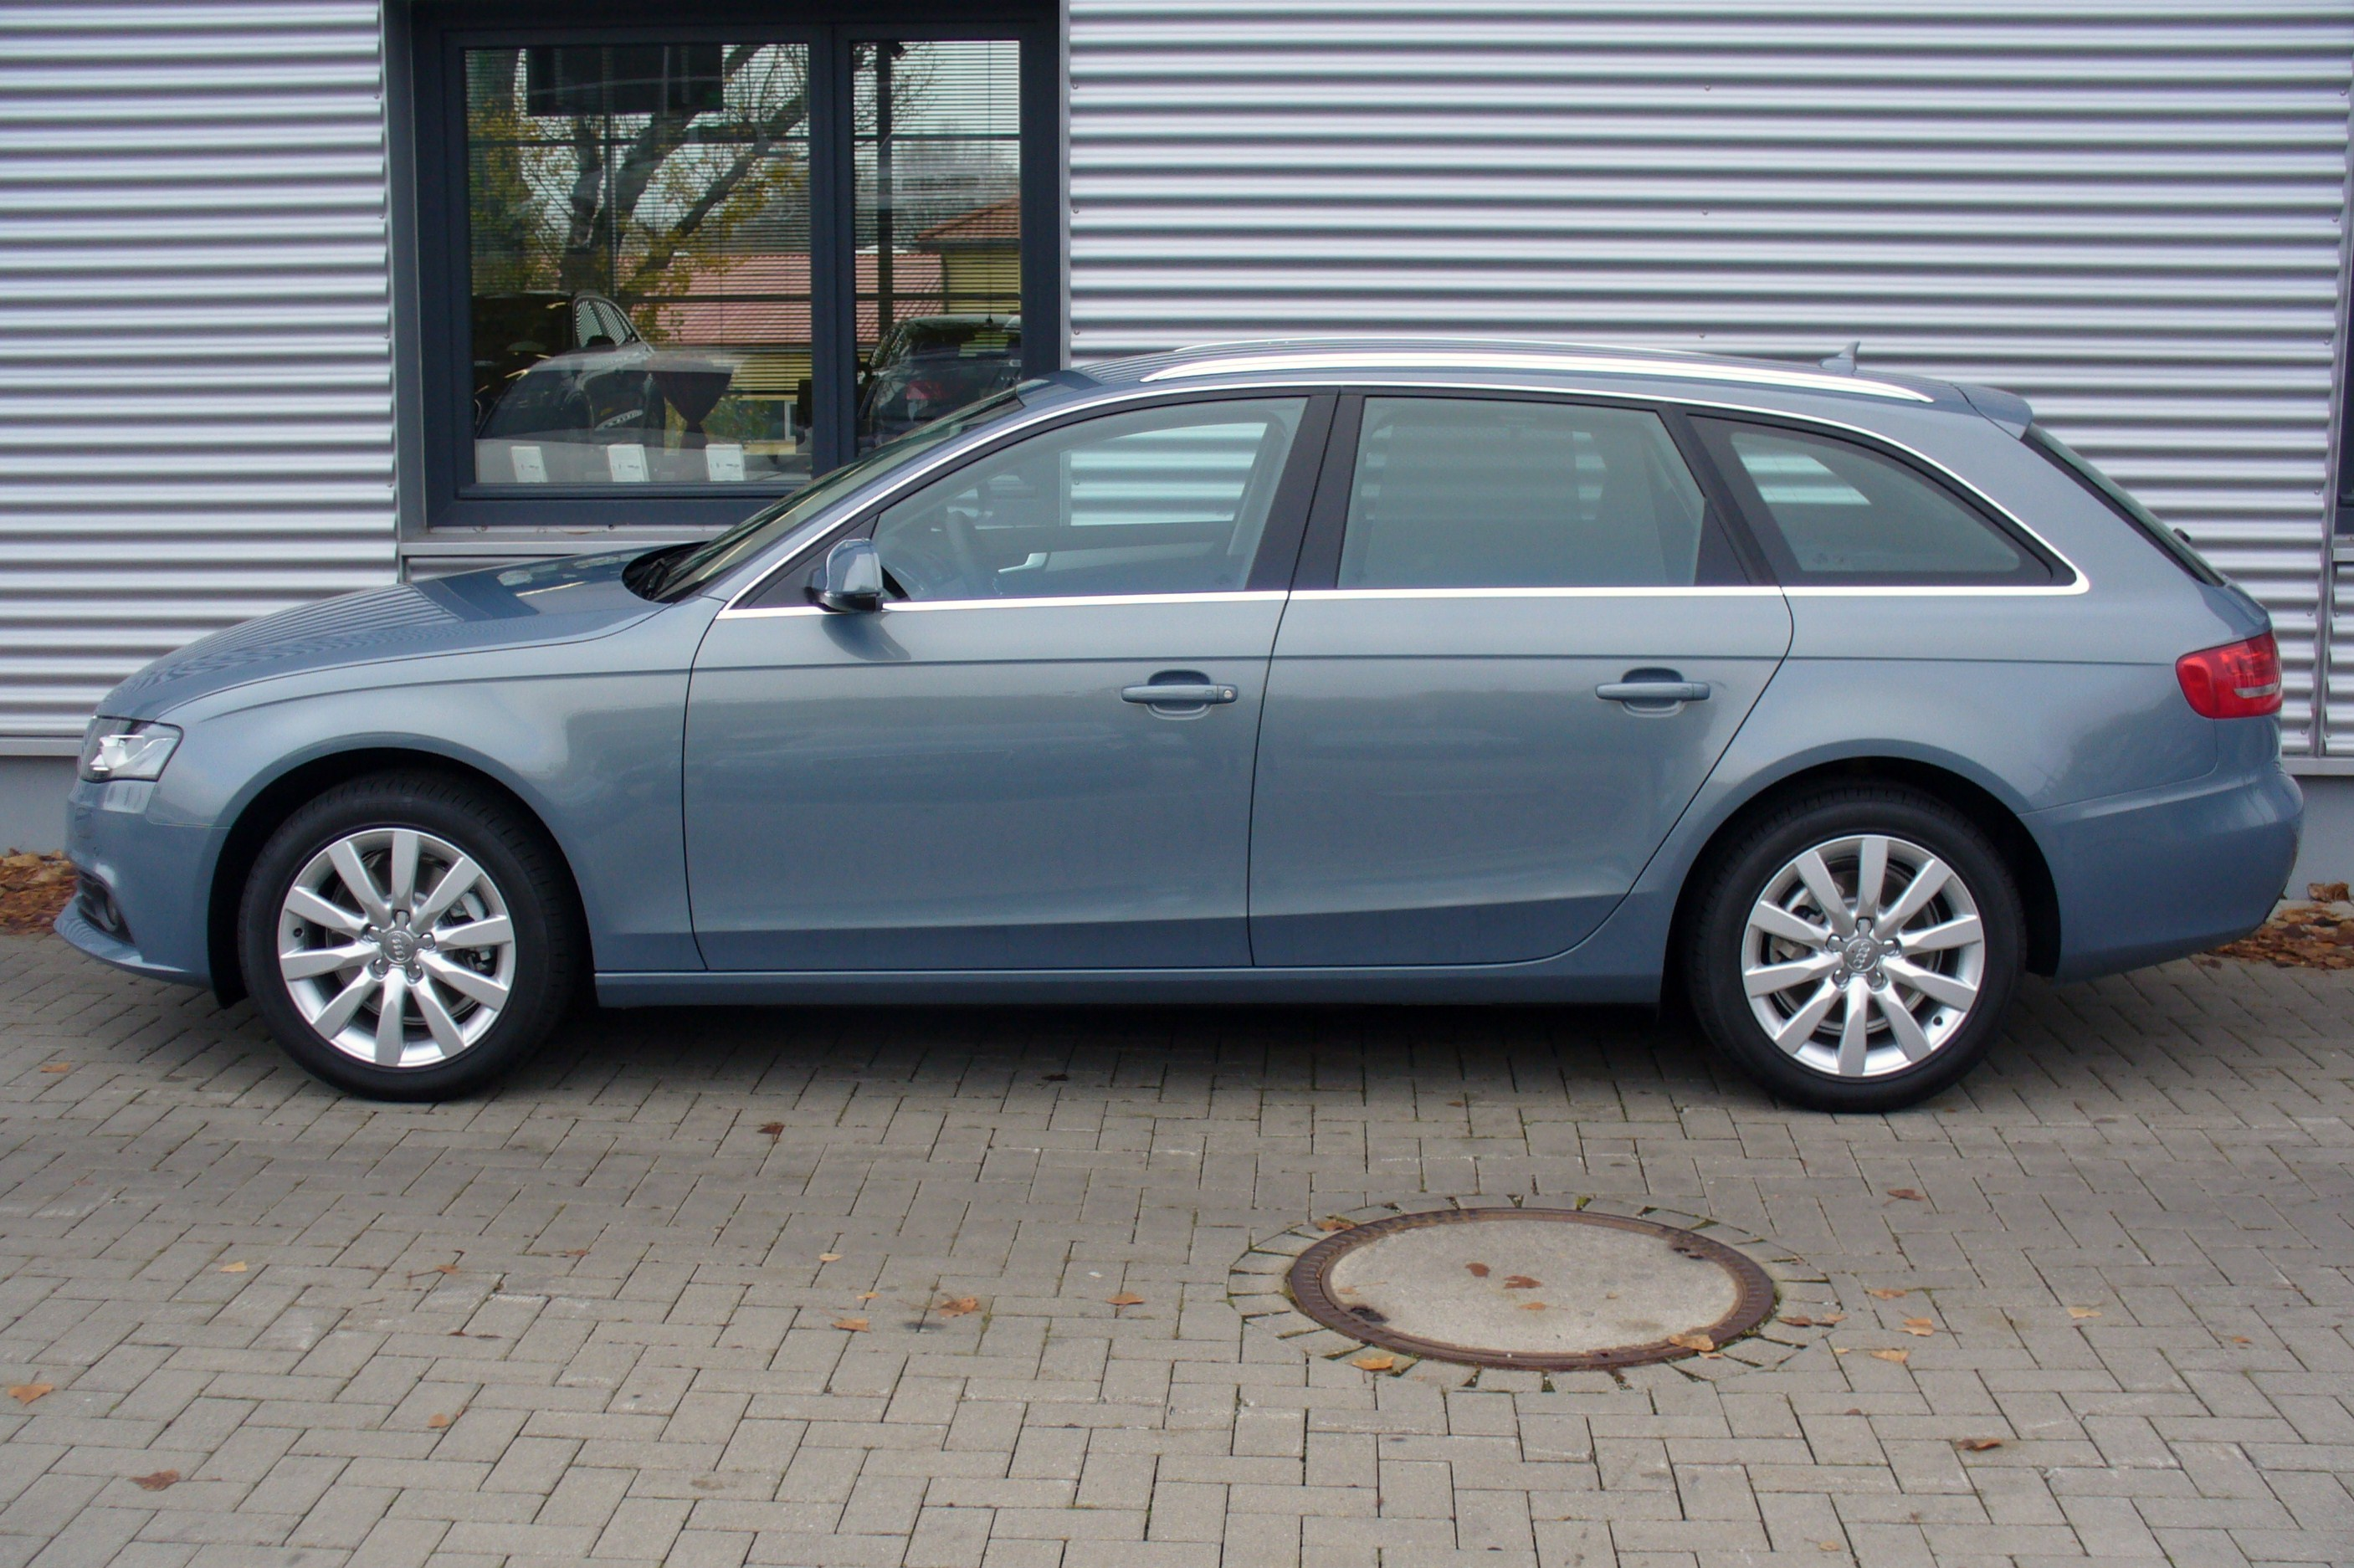 2011 Audi A4 Avant - Viewing Gallery